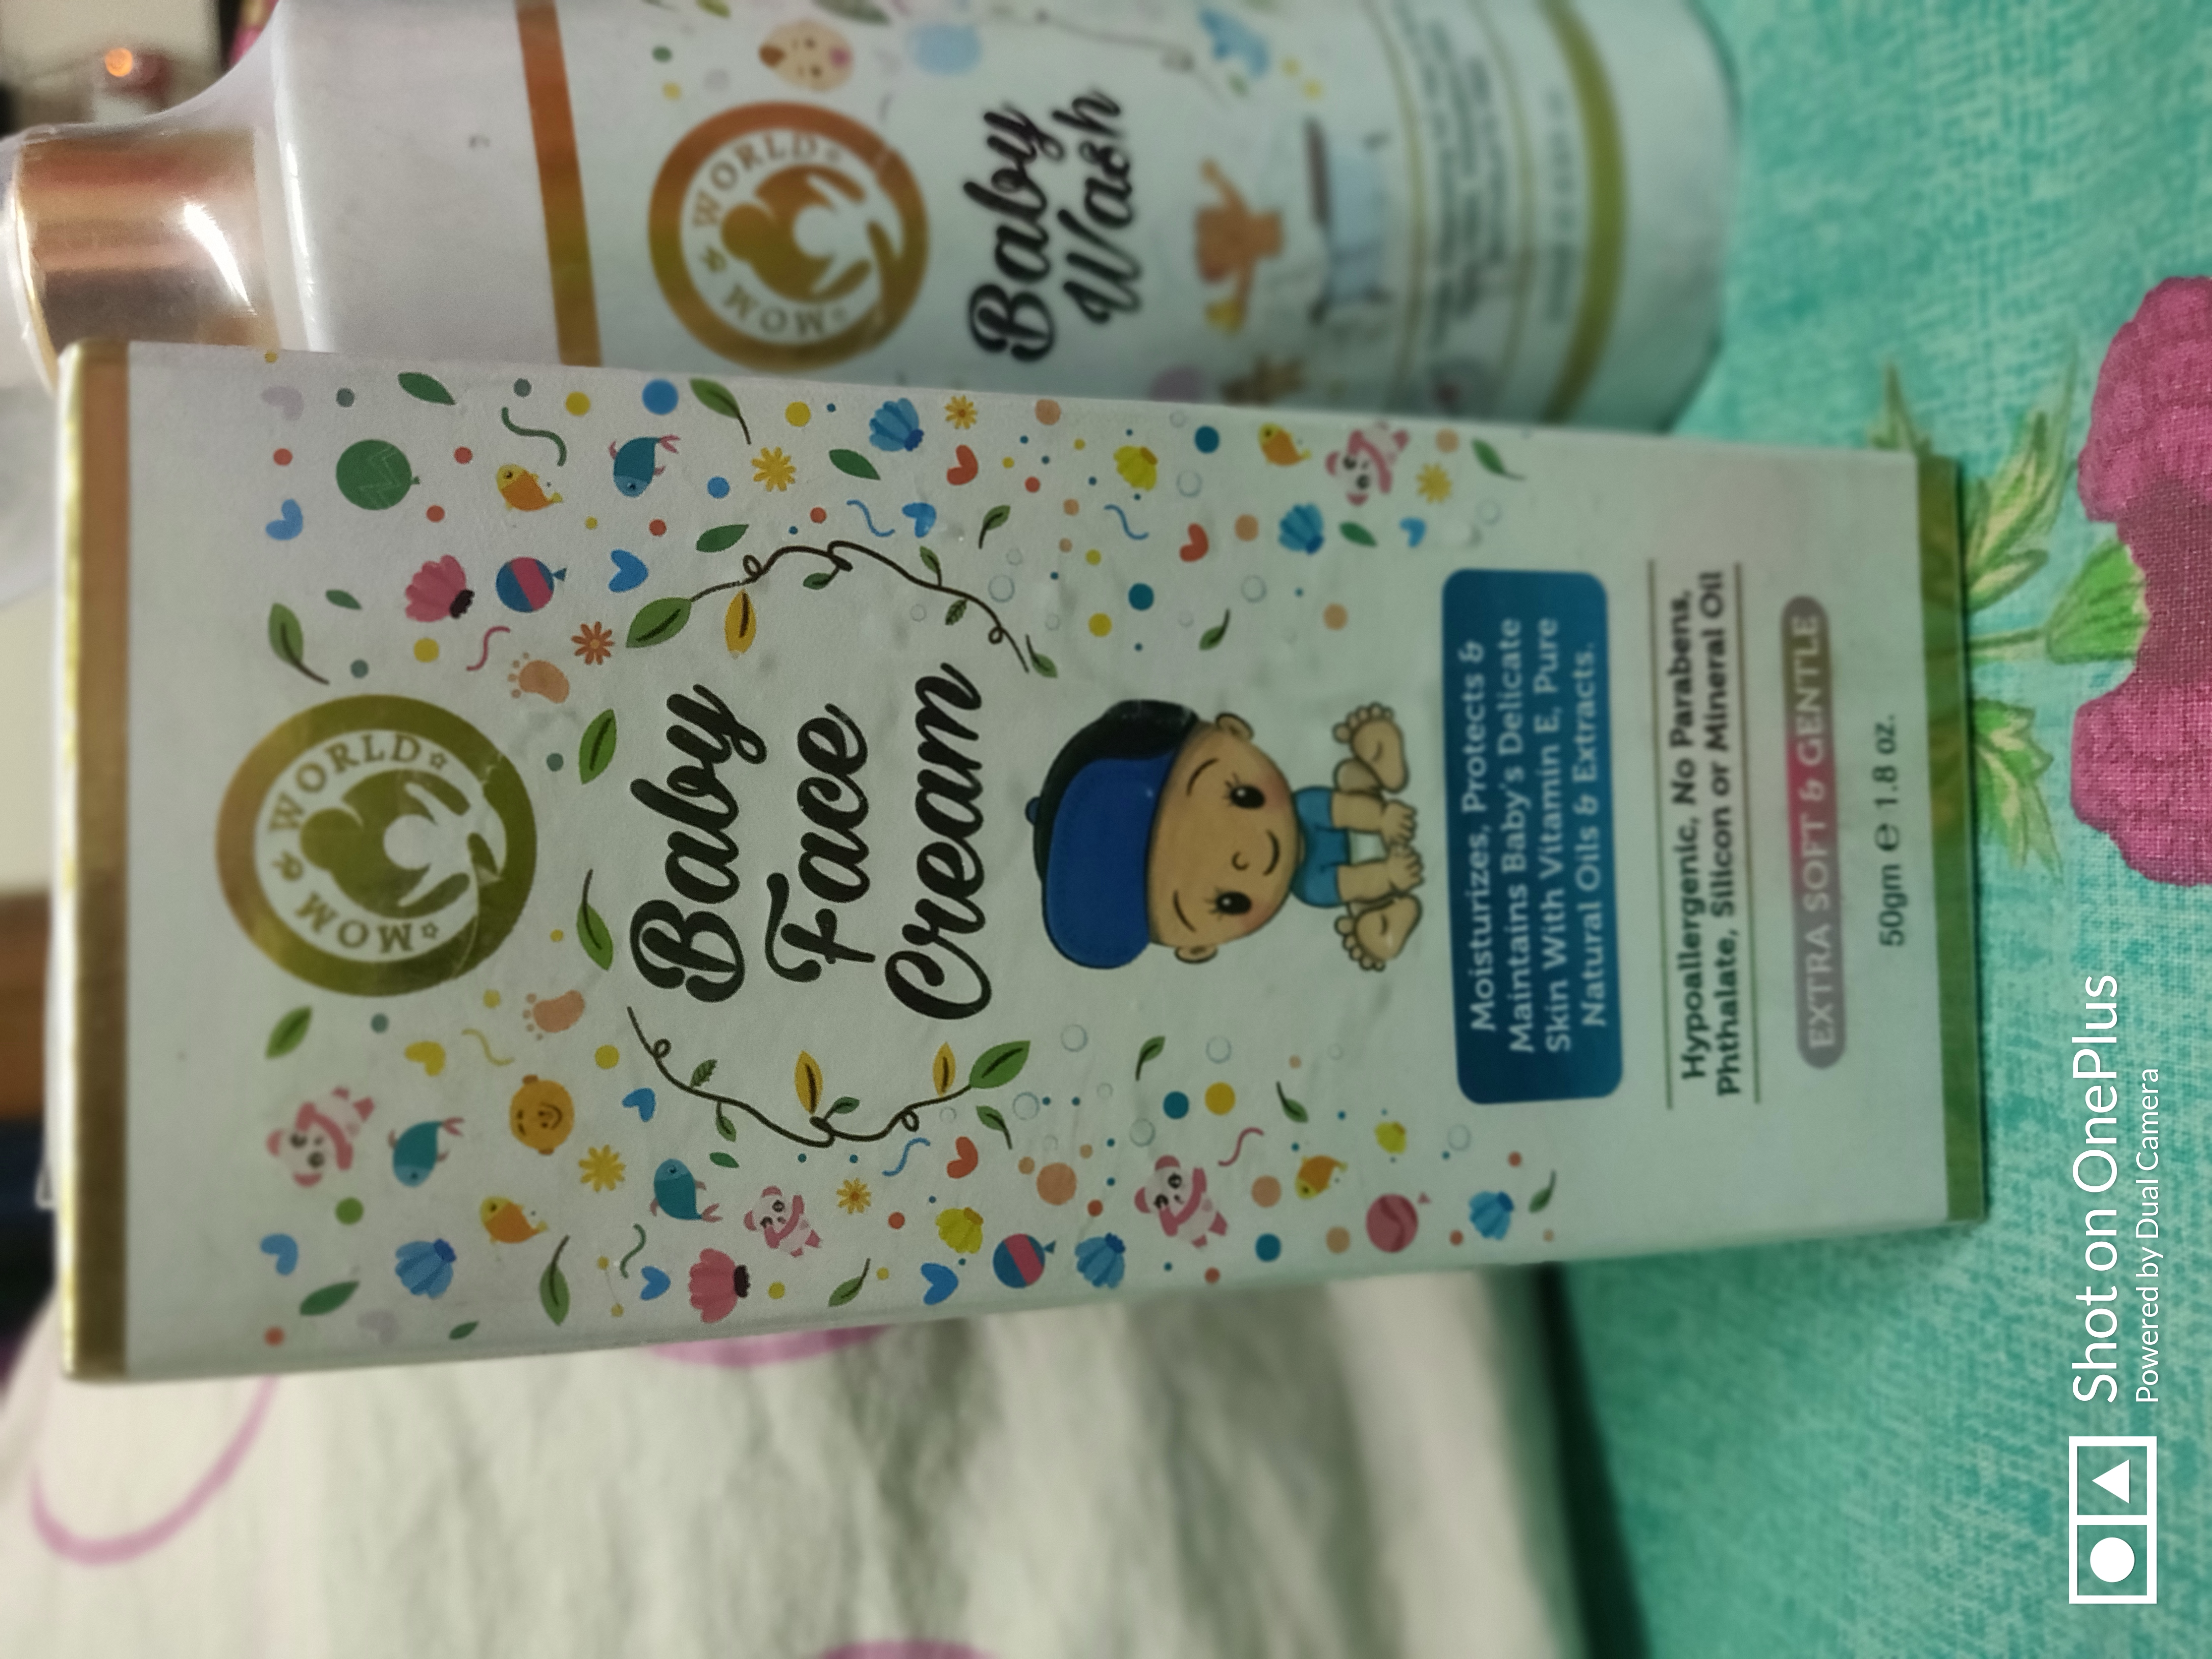 Mom & World Baby Face Cream-Smoothest Baby Face Cream-By arushi